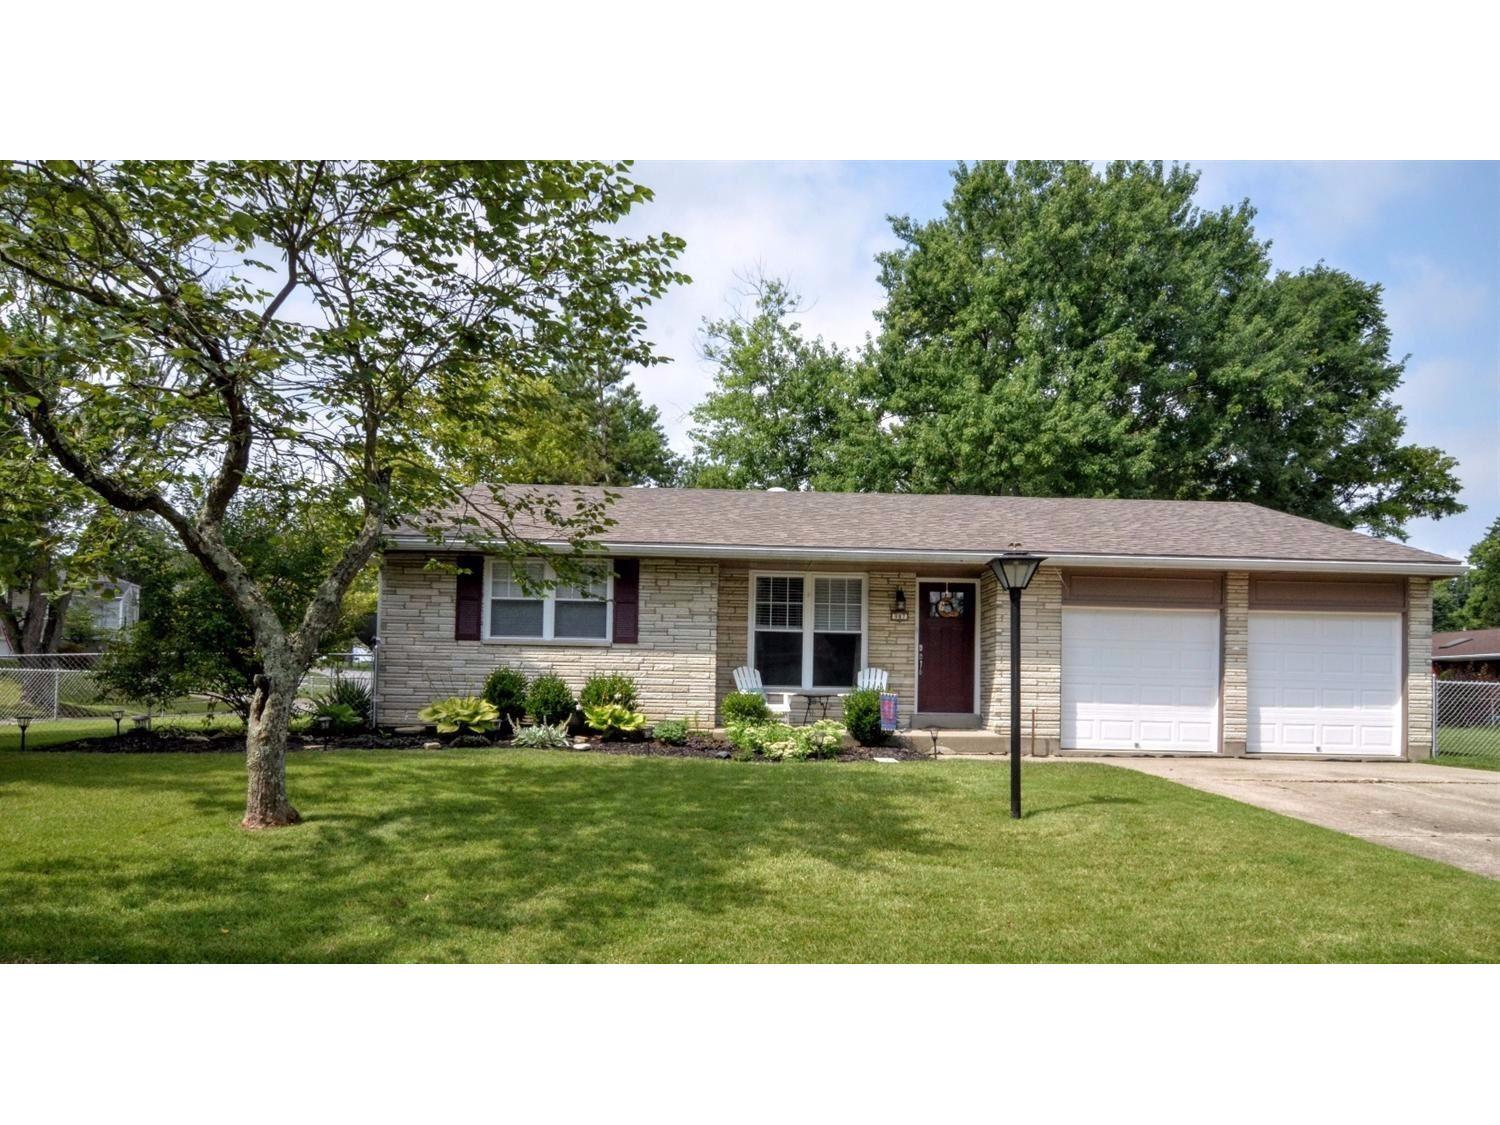 987 Patricia Ln Anderson Twp Oh 45230 Listing Details